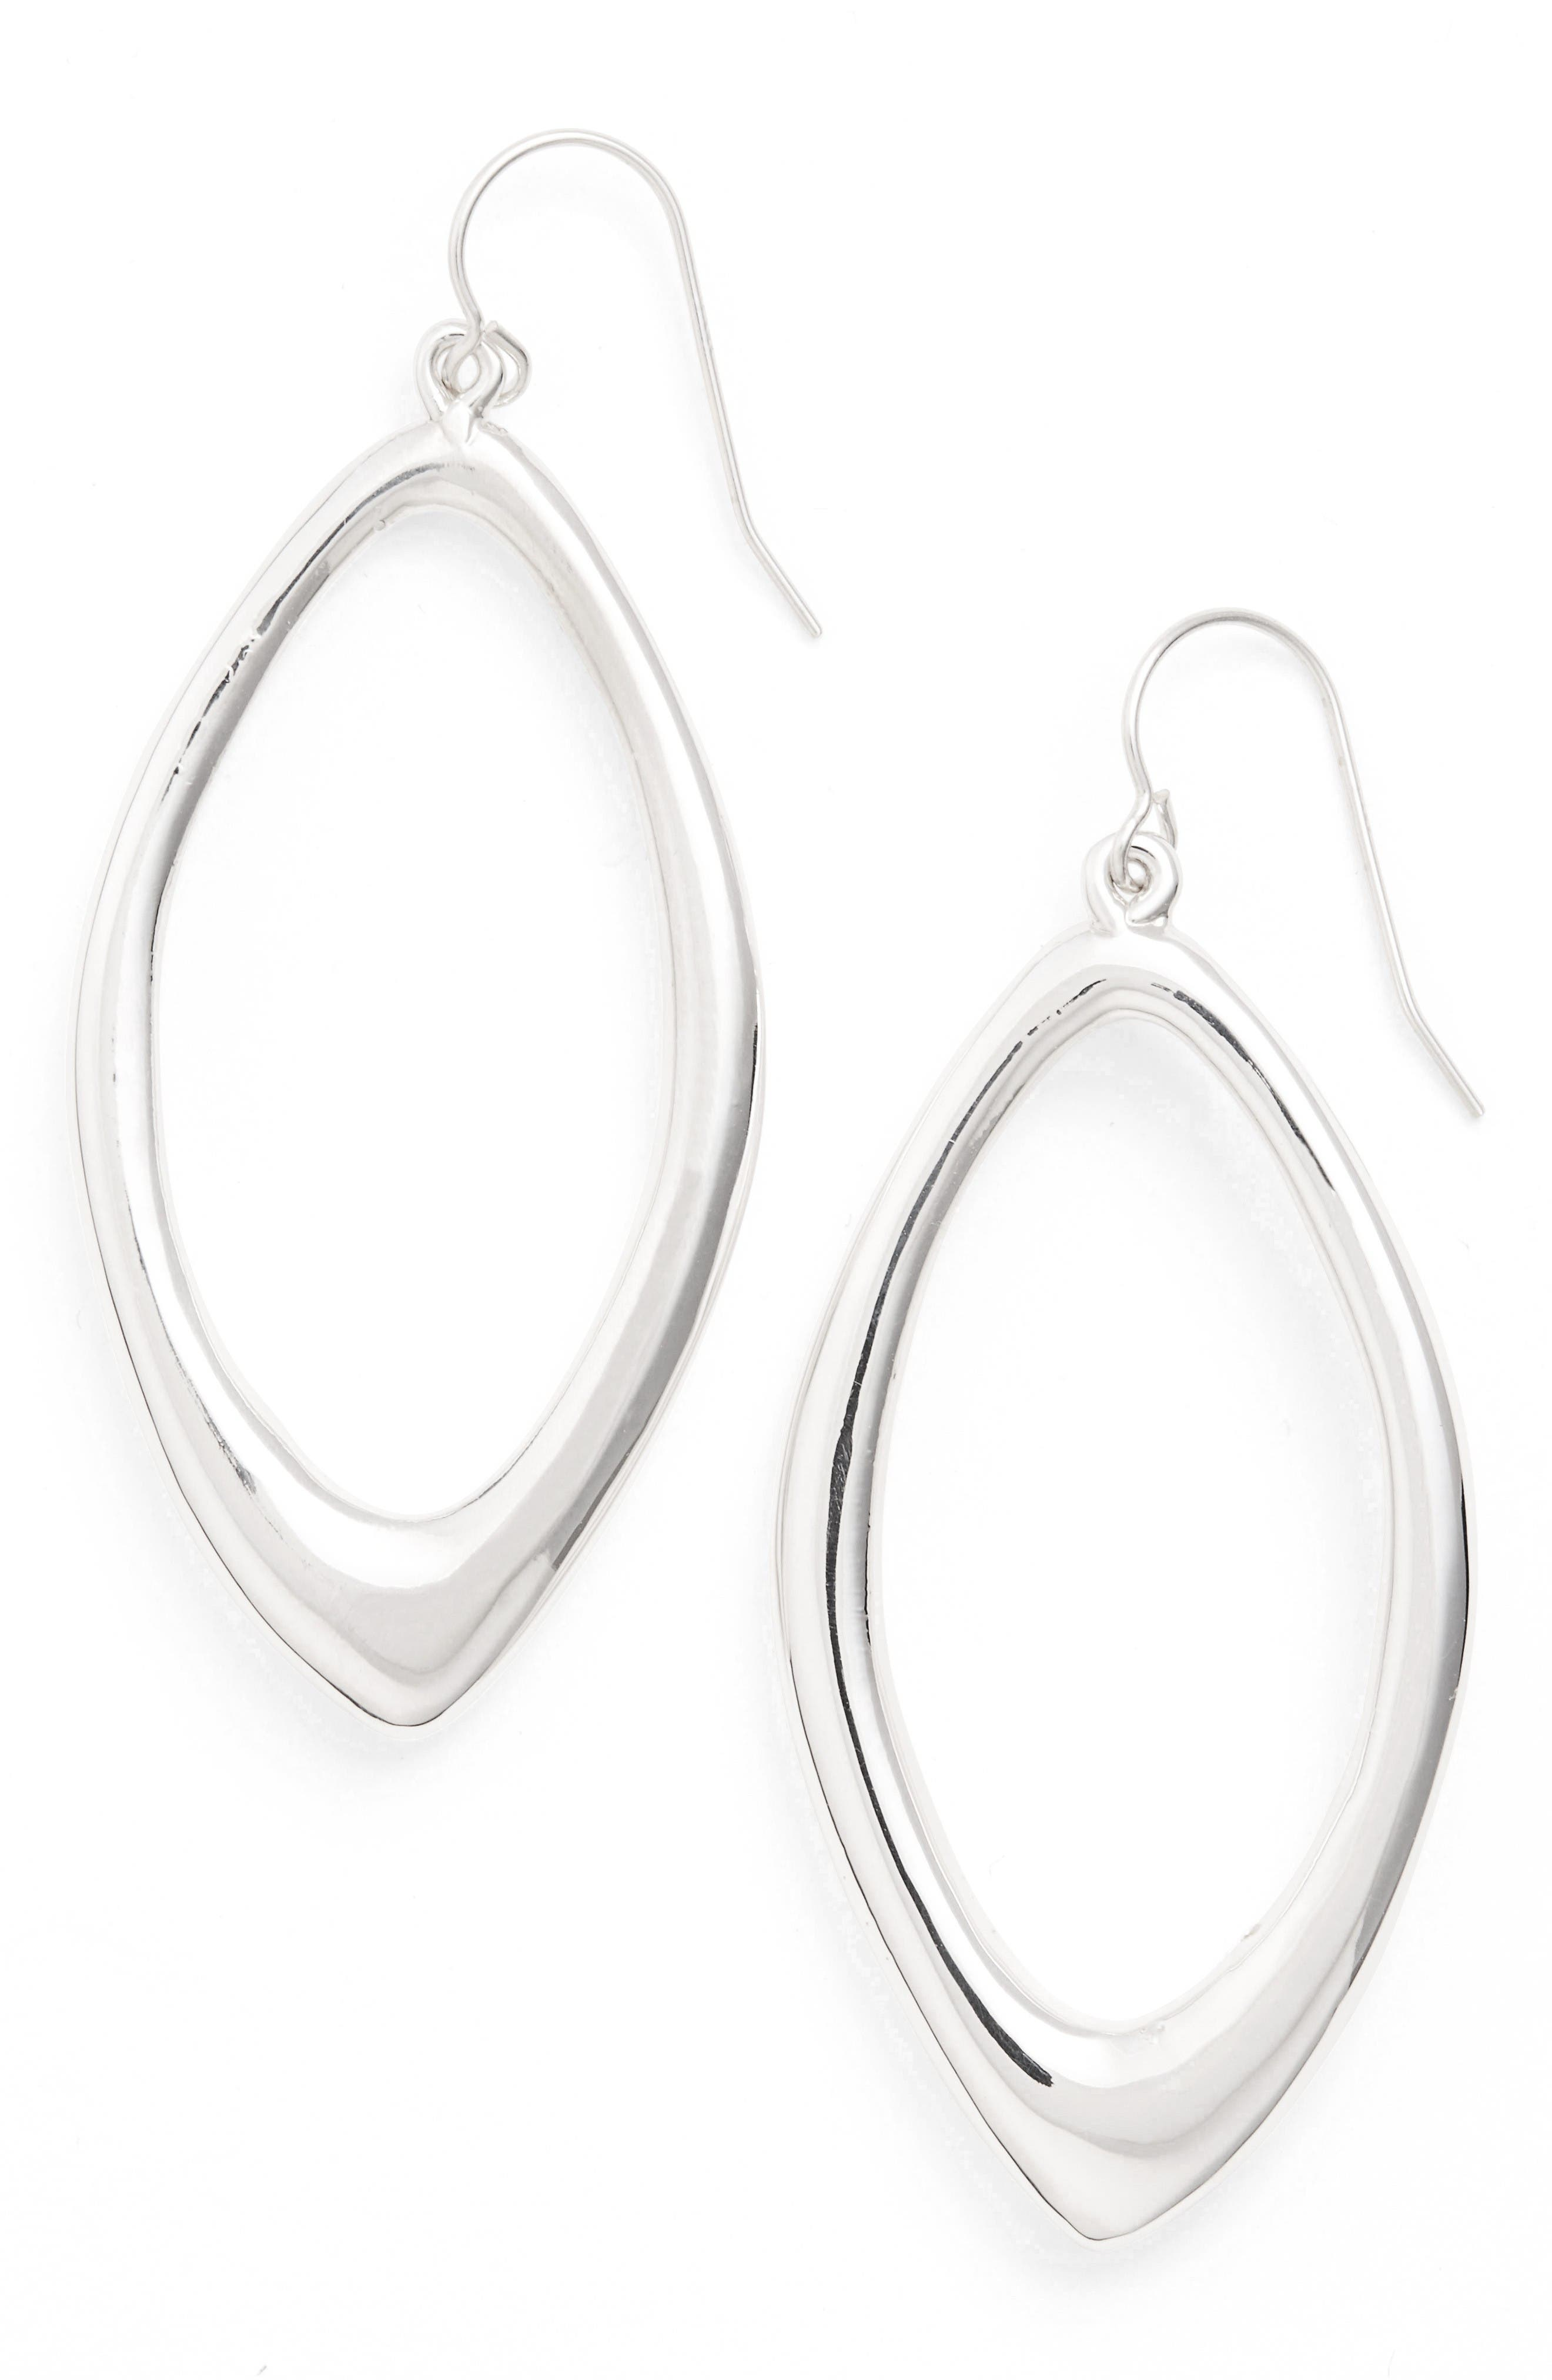 Simon Sebbag Open Abstract Drop Earrings